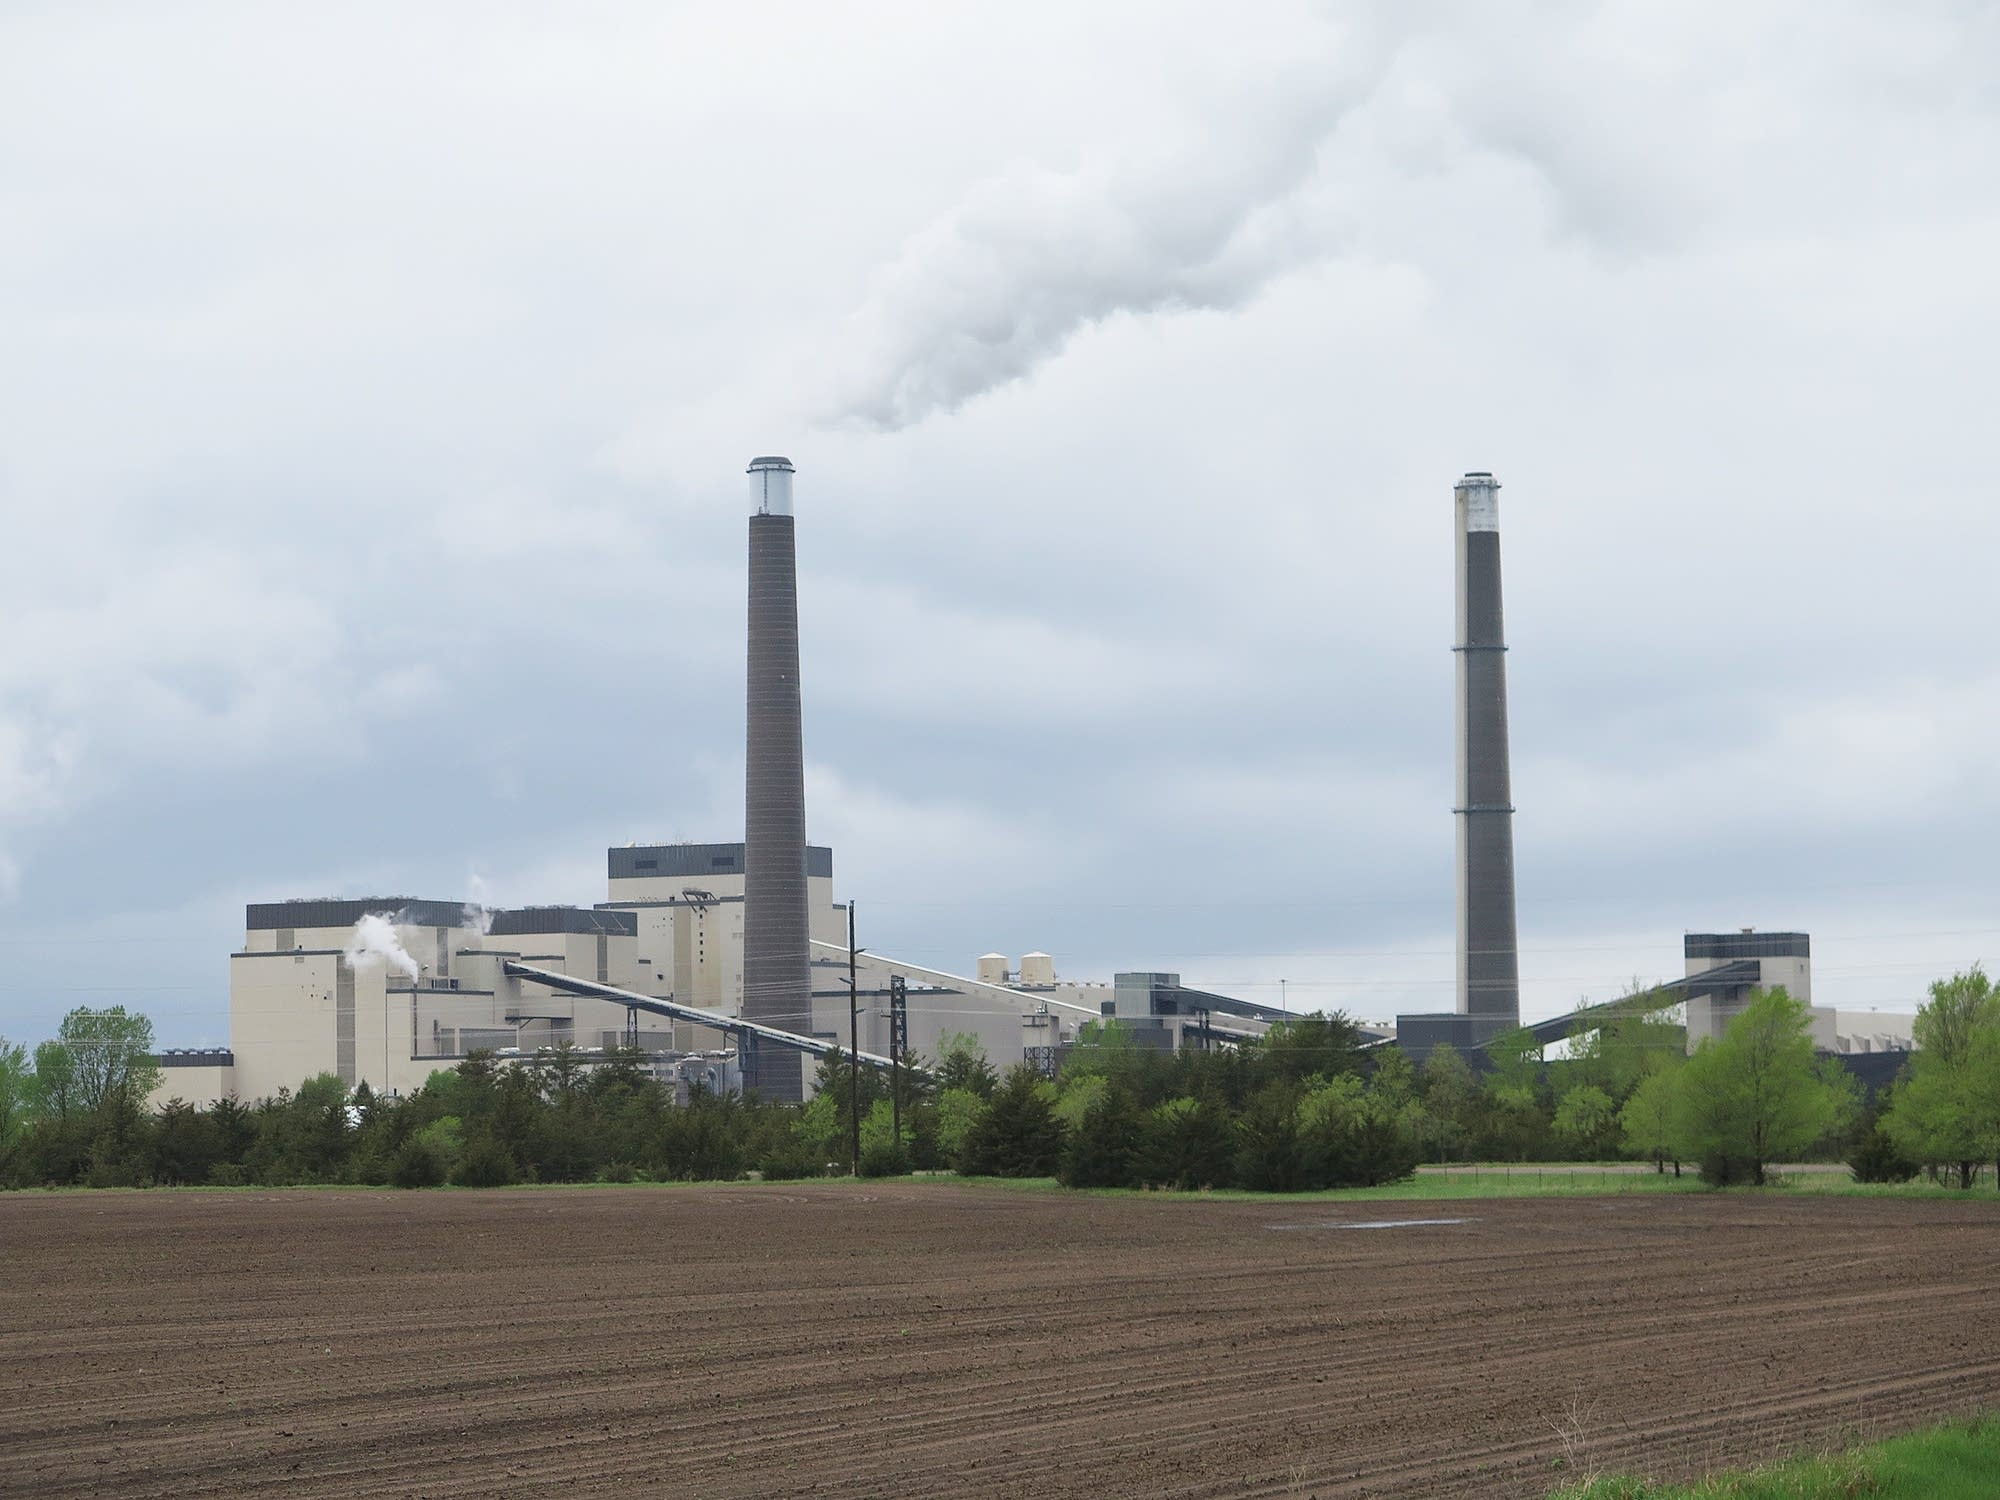 The Sherburne County Generating Station dominates the skyline.